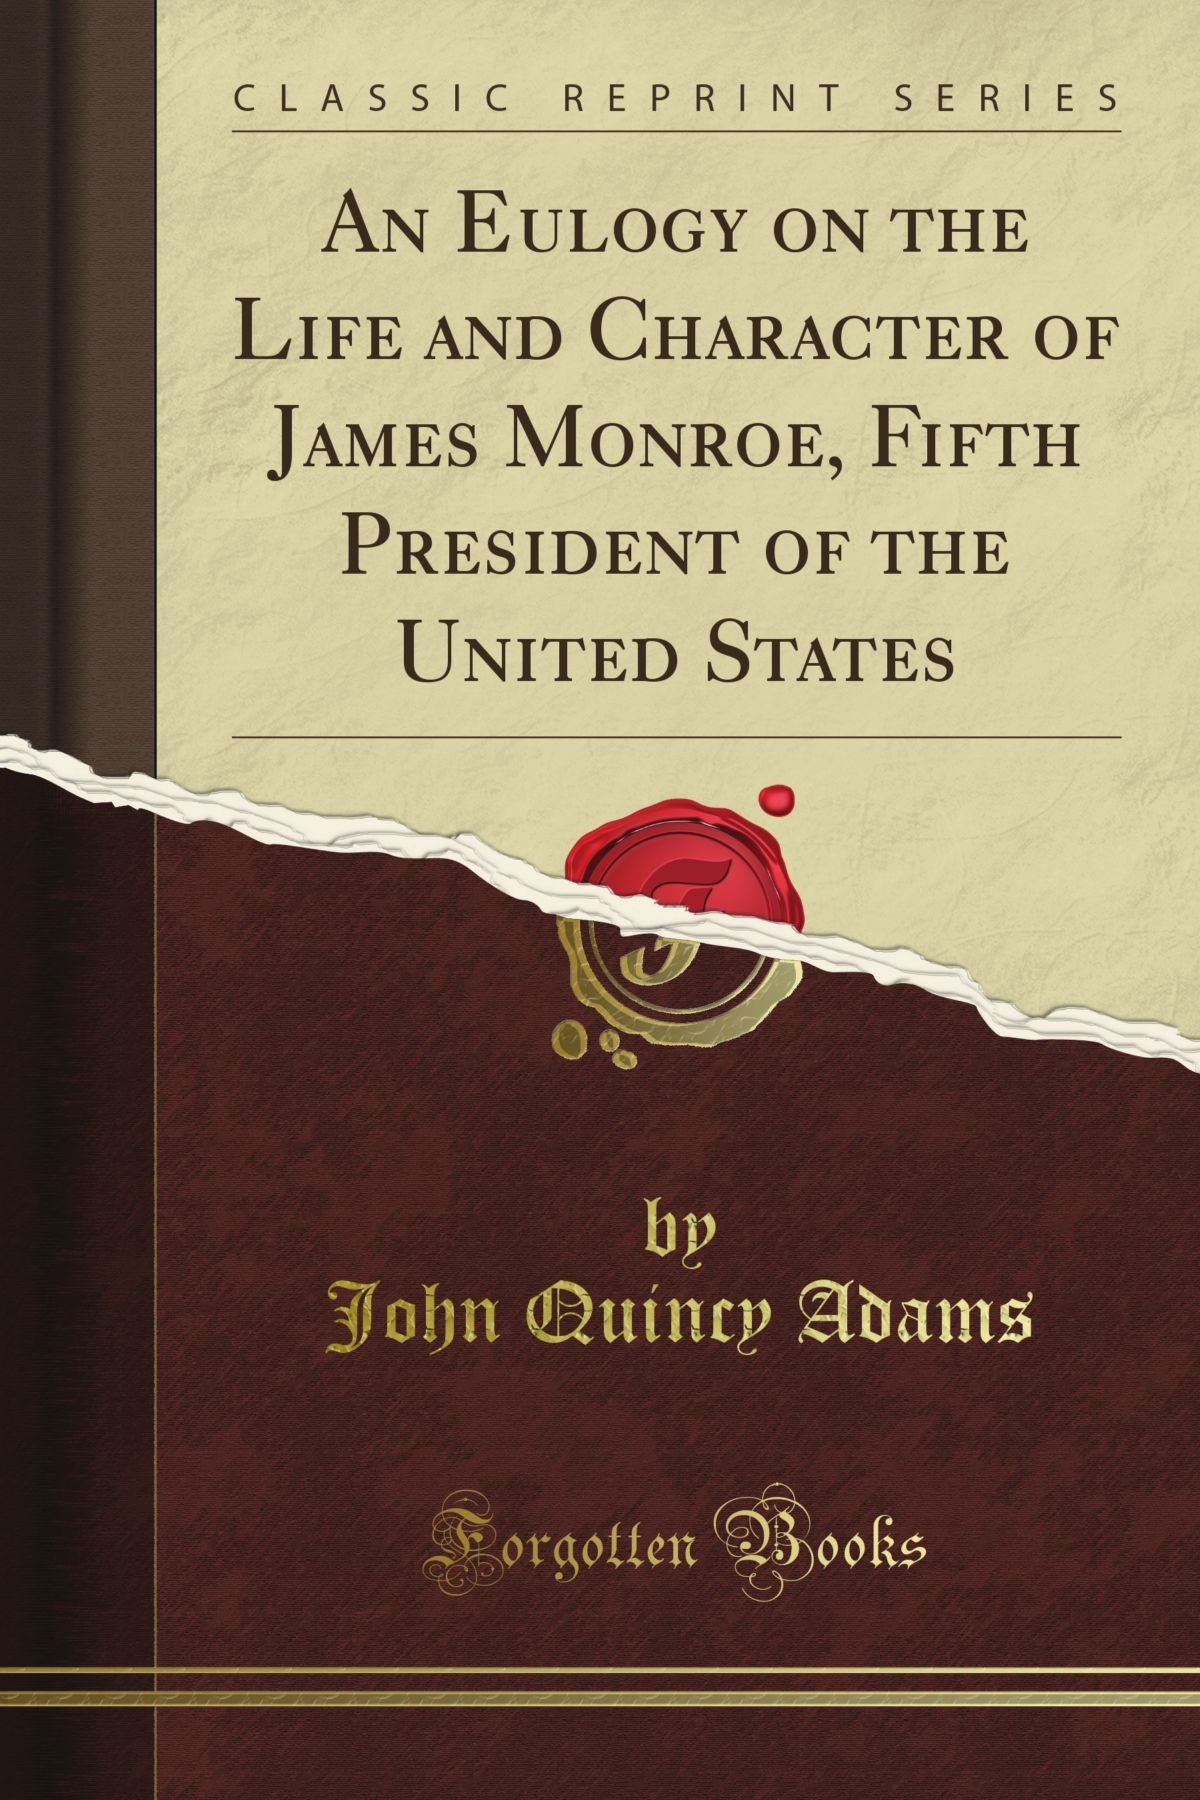 An Eulogy: On the Life and Character of James Monroe, Fifth President of the United States (Classic Reprint) PDF